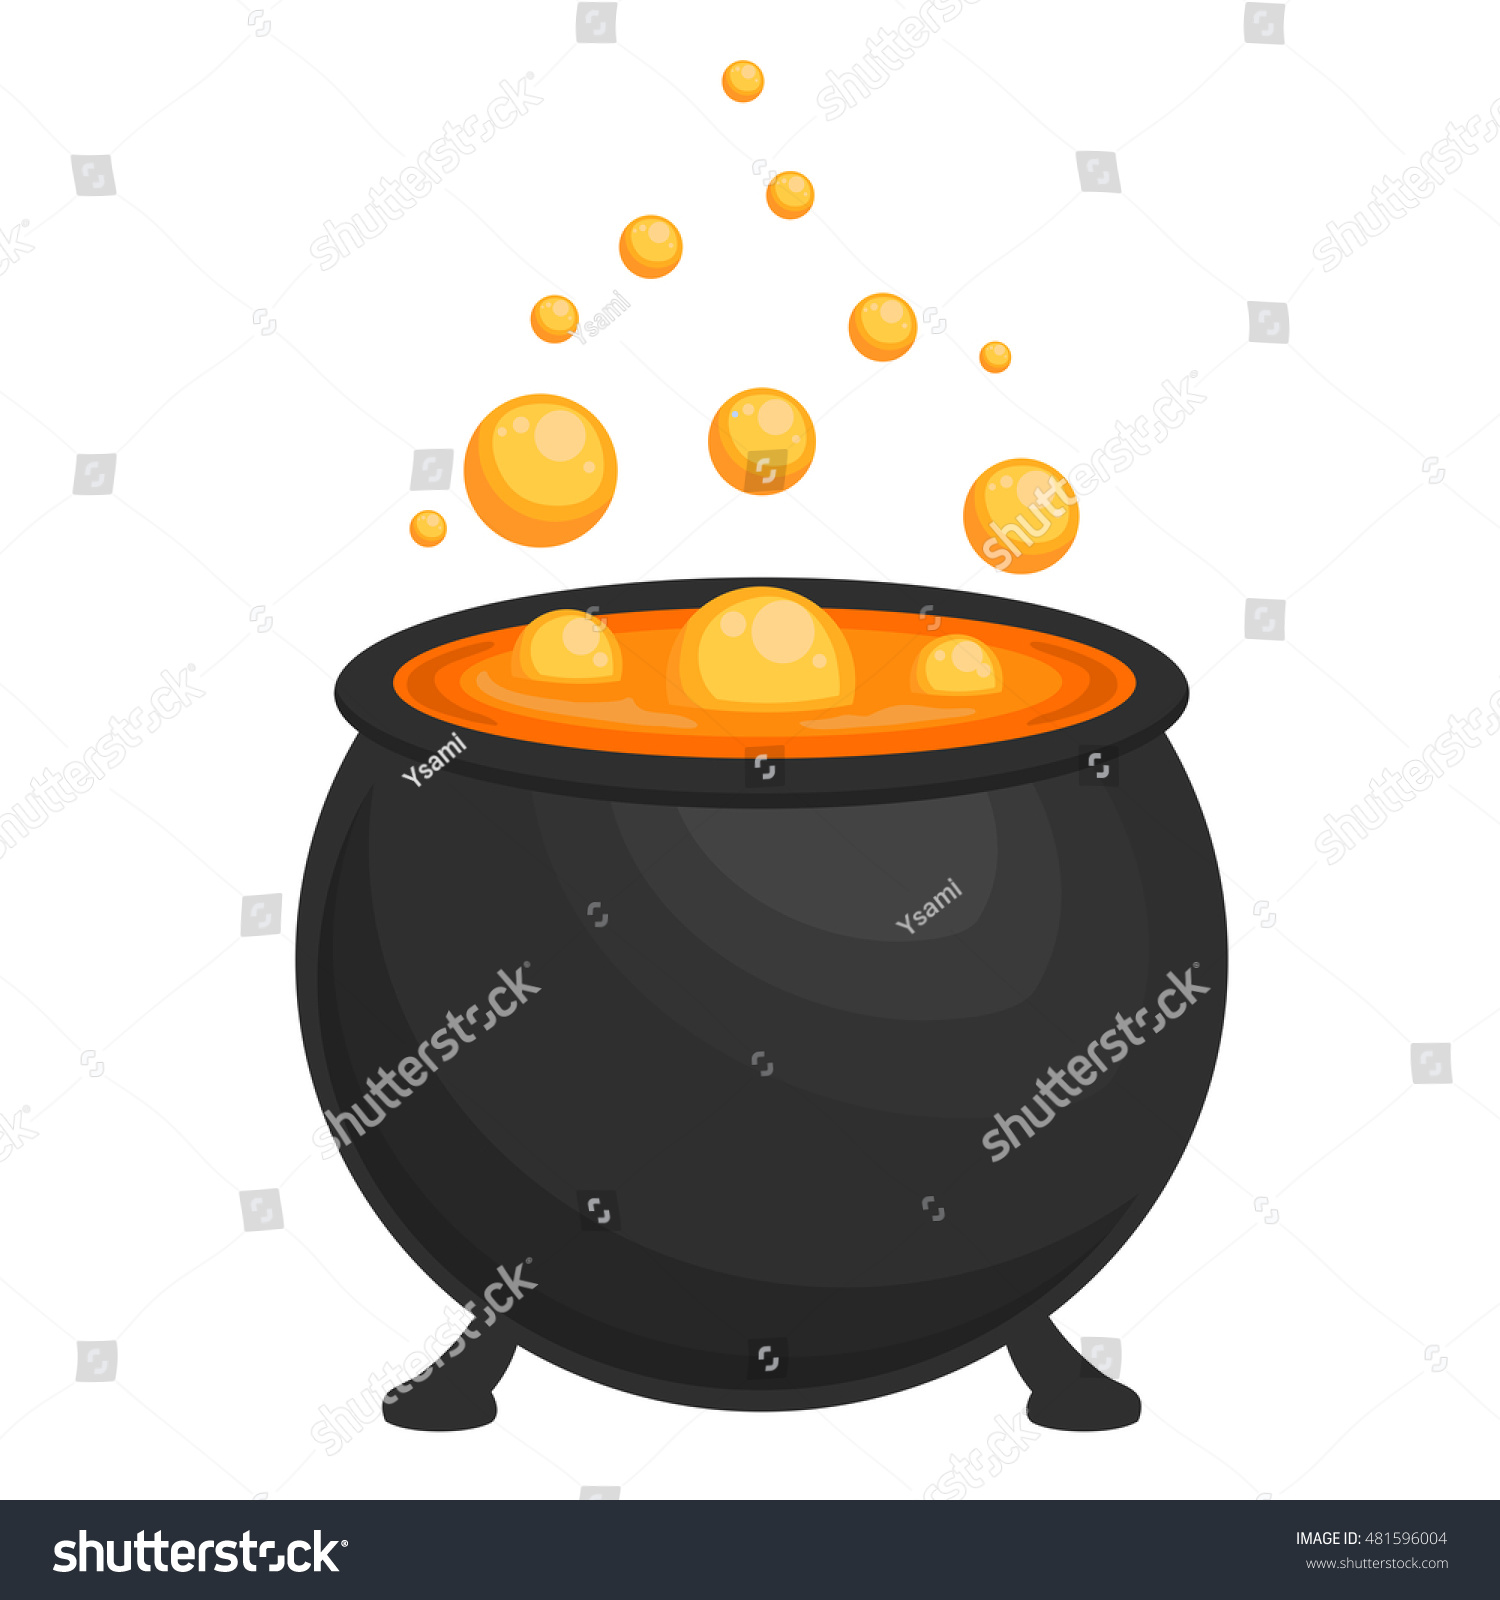 Halloween Cauldron On White Background Stock Vector 481596004 ...